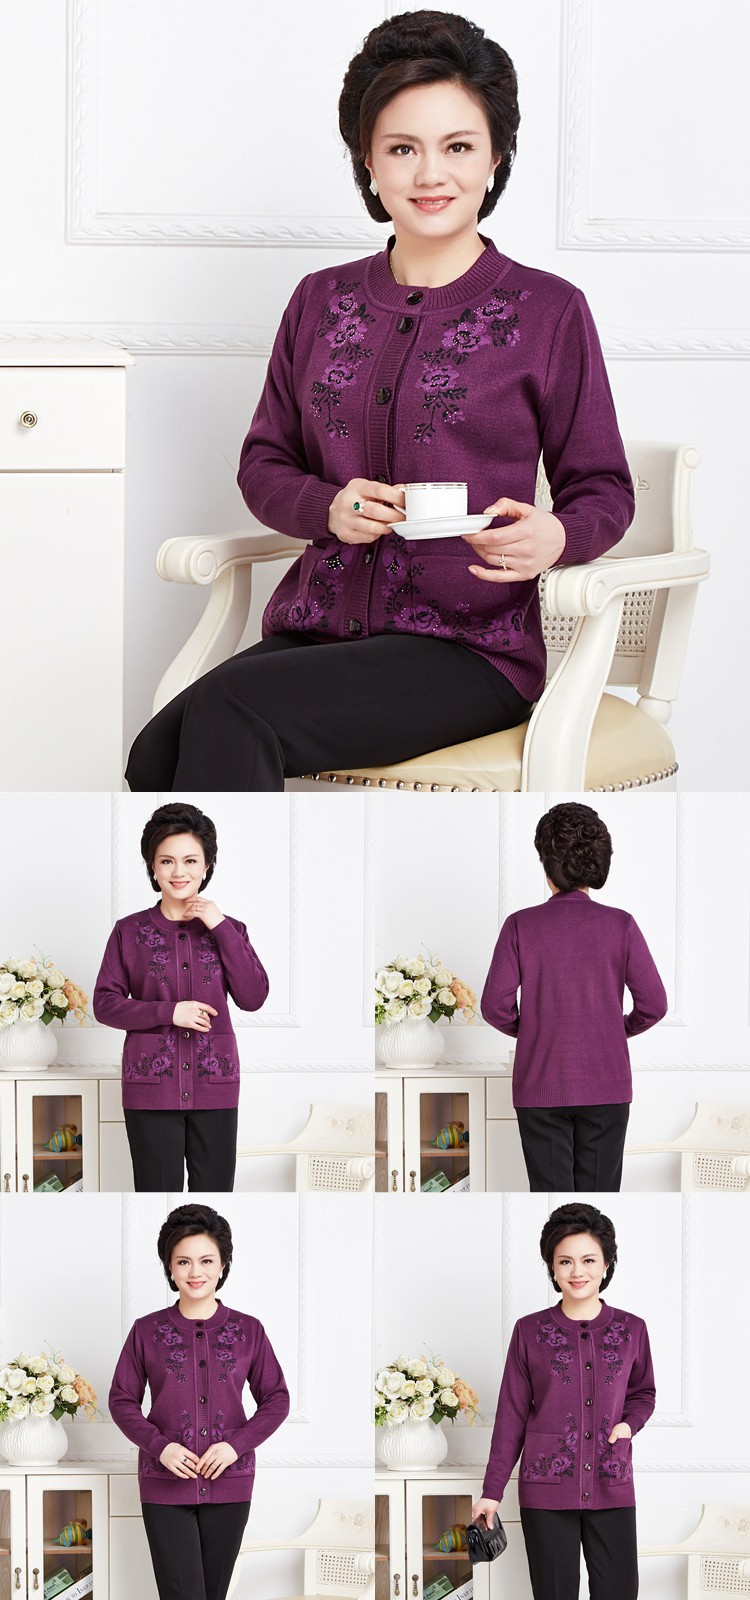 Winter Warm Wool Sweater For Women Pullover Female Printing Flower Knitted Ladies Embroidered Sweaters Pullovers bbbb